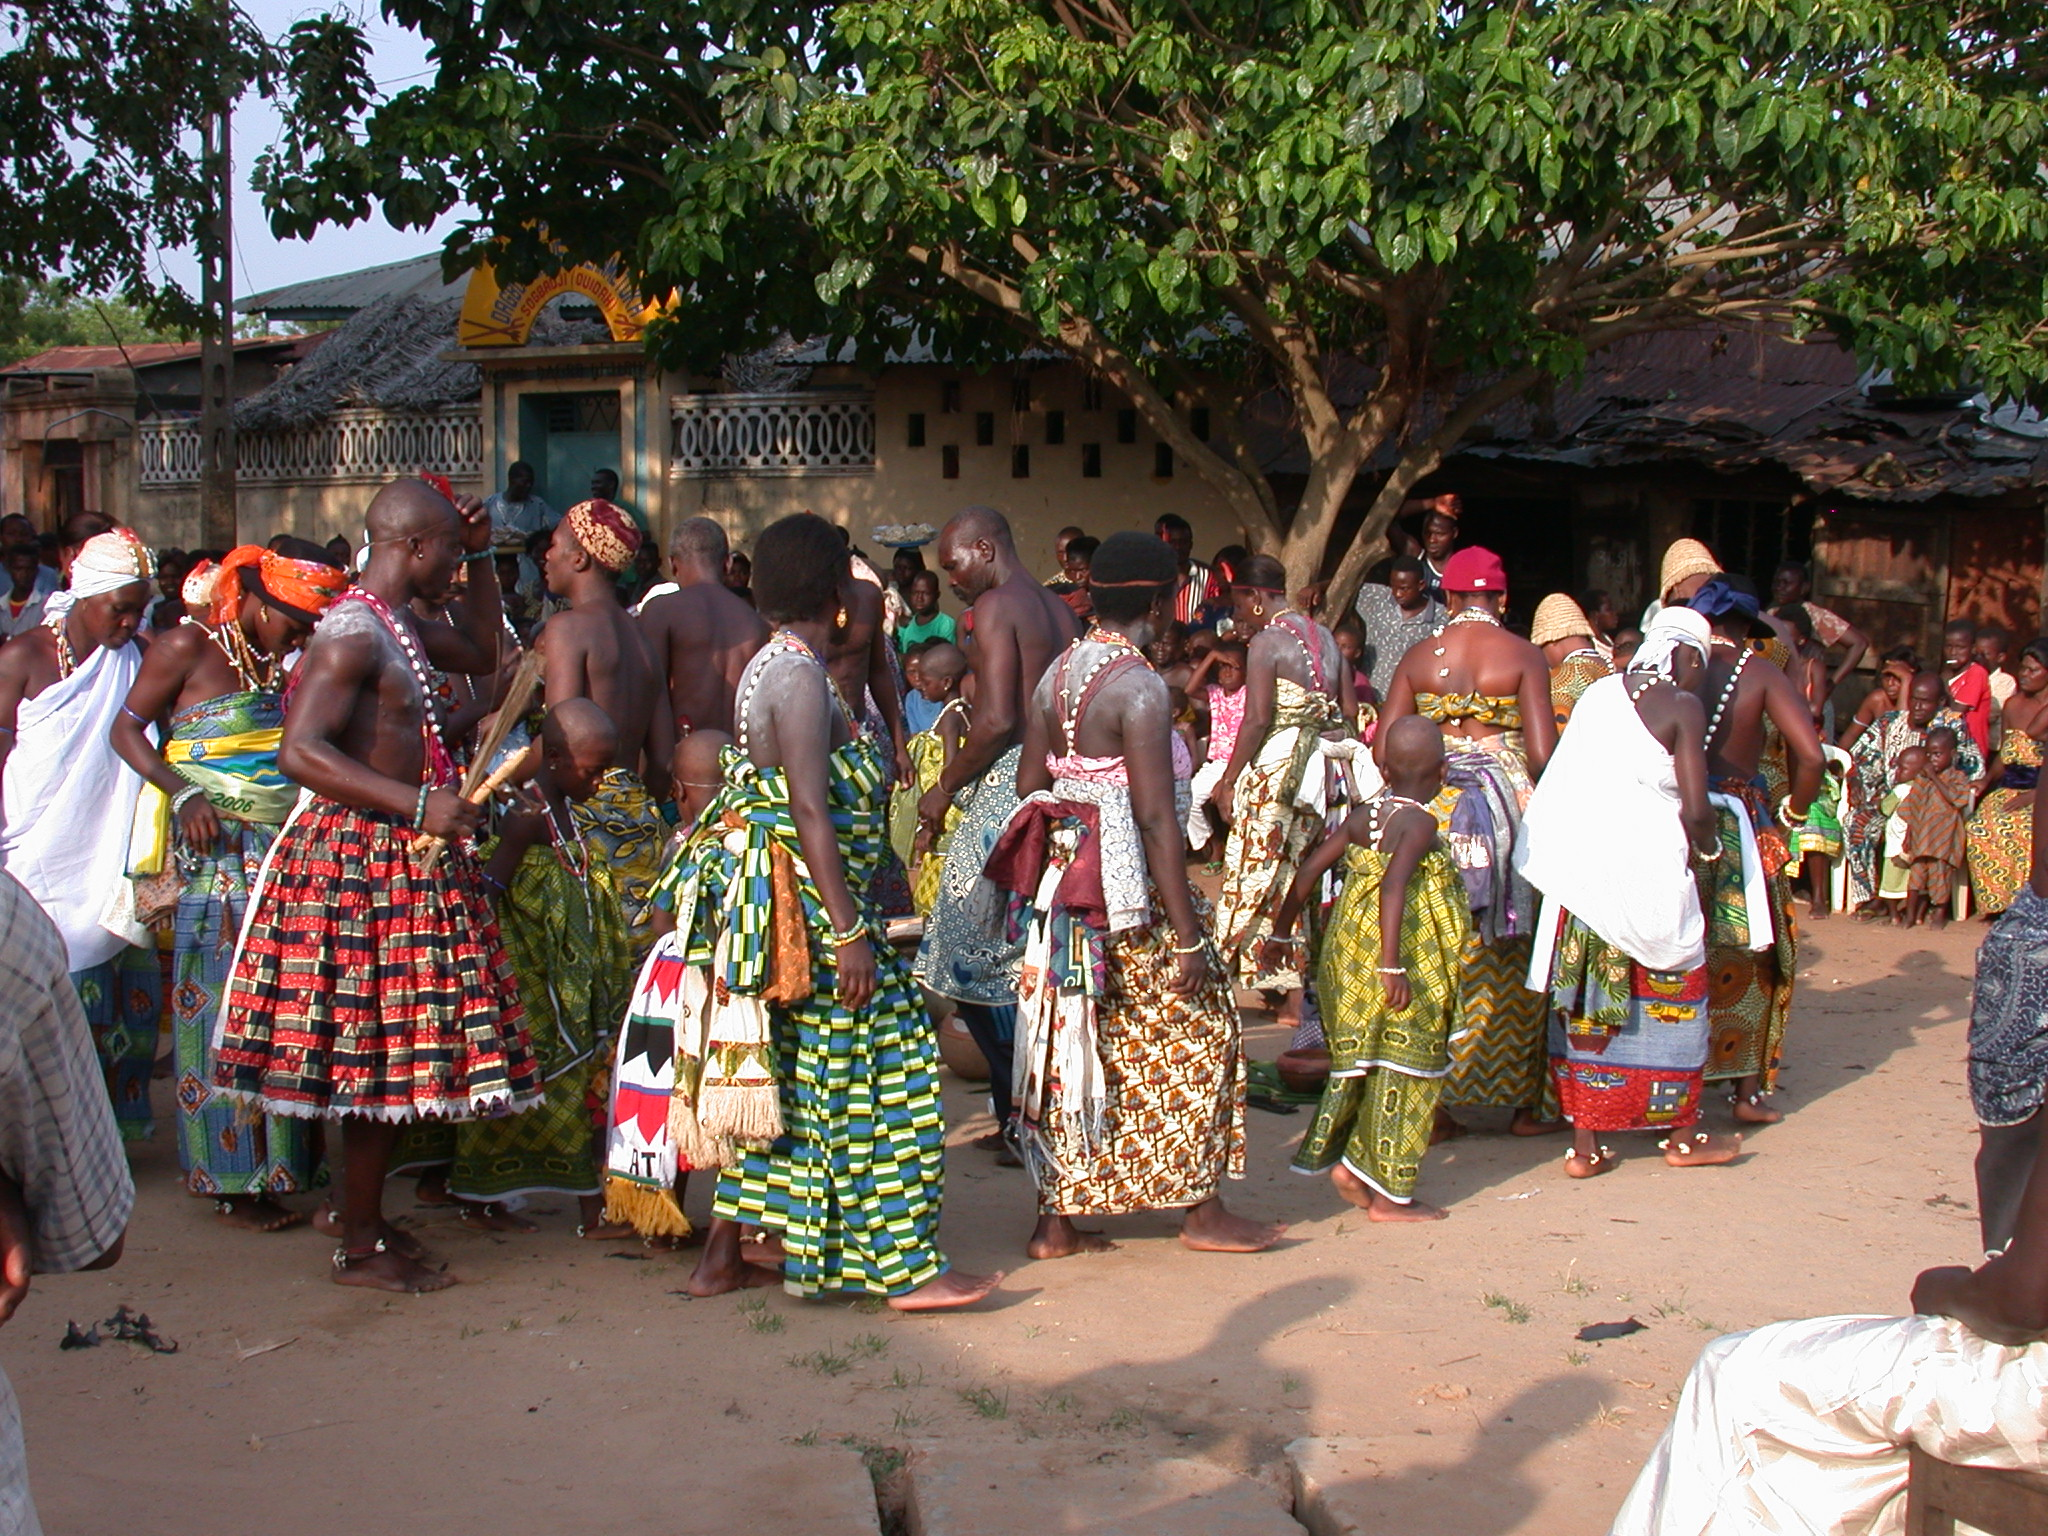 Probably Dance for a Particular Deity, Vodun Ritual, Ouidah, Benin